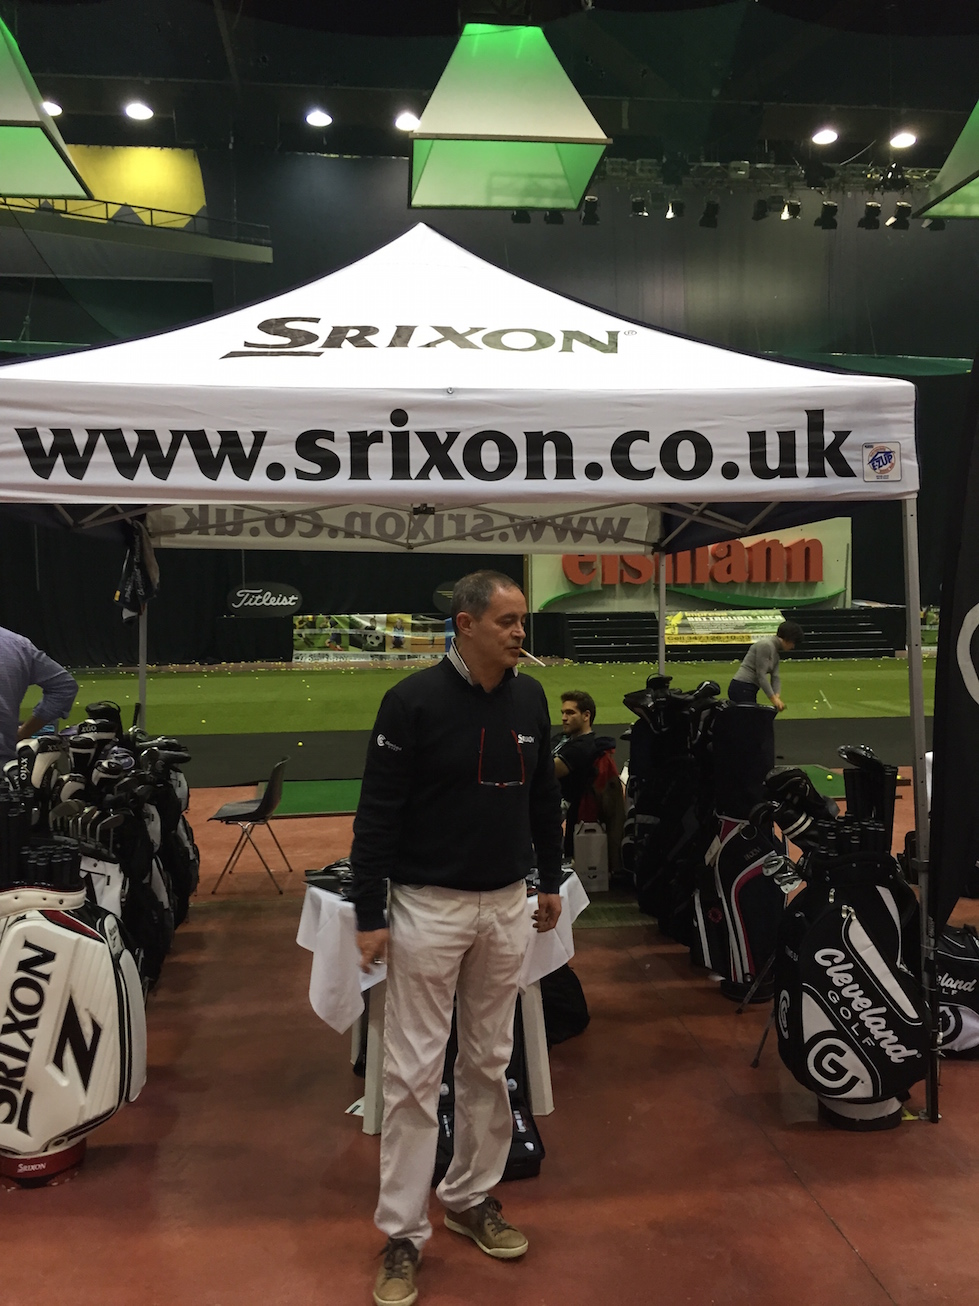 Fiera del Golf Parma 2015 le foto ed i video di Italian Golf Show e le prove dei materiali41 - Fiera del Golf Parma: le foto ed i video di Italian Golf Show